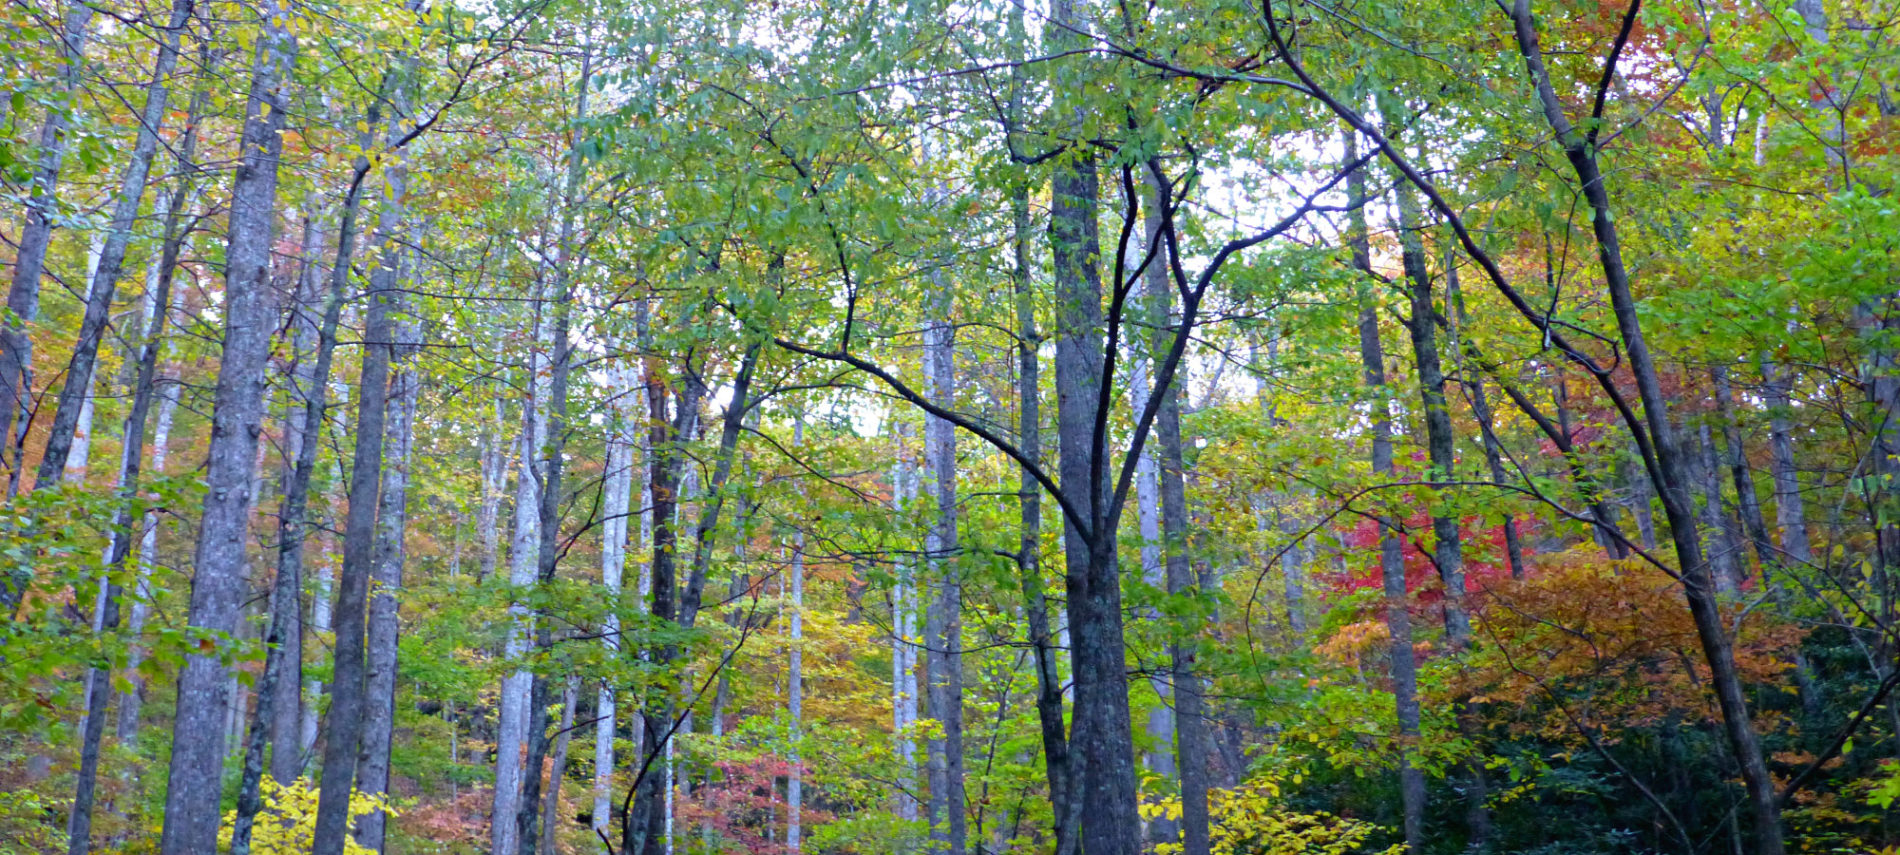 2016 Fall Color Report for the NC Mountains: Week 3